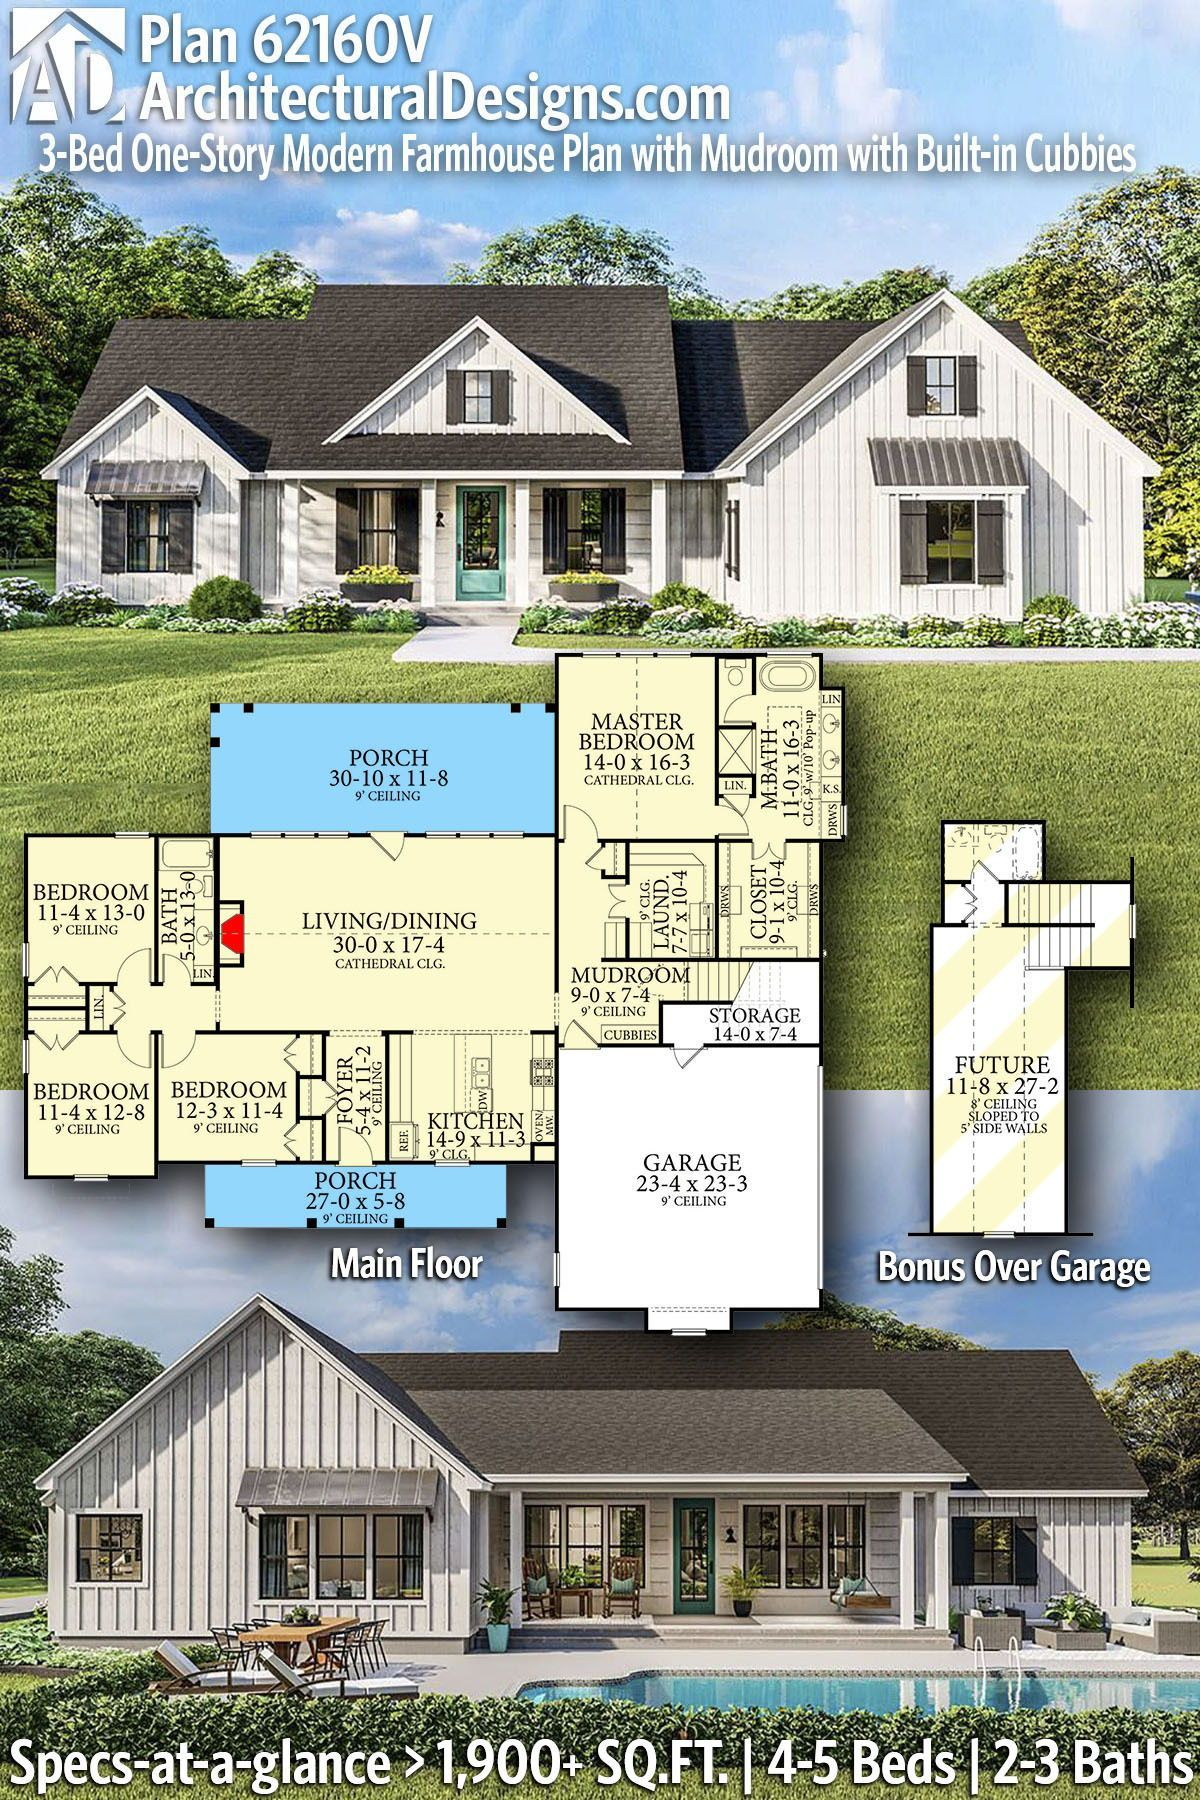 Plan V 4 Bed e Story Modern Farmhouse Plan with Mudroom with Built in Cubbies